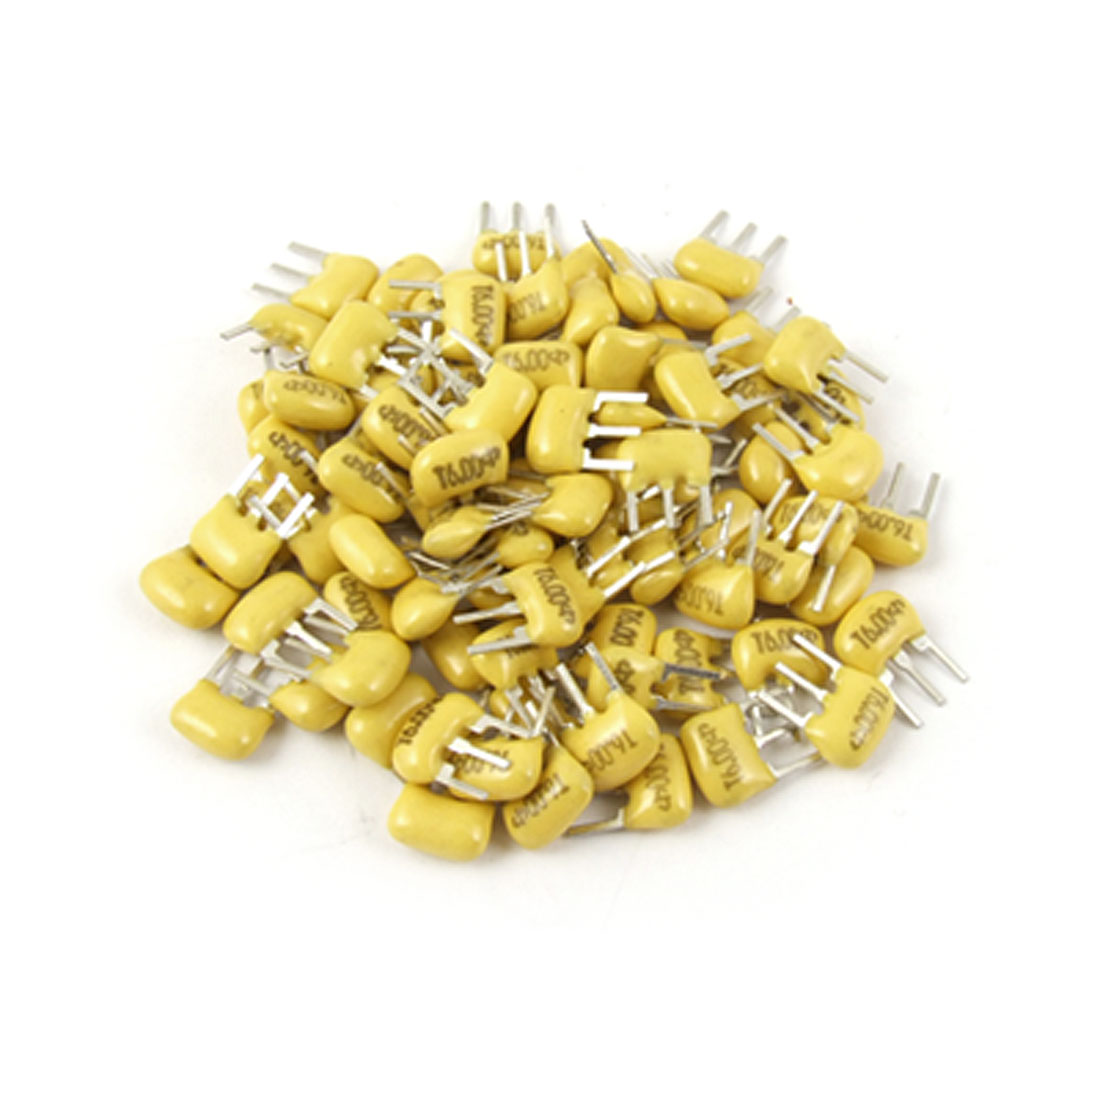 100 Pcs 6 MHz 2.5mm Pitch 3 Pins Ceramic Filters Yellow